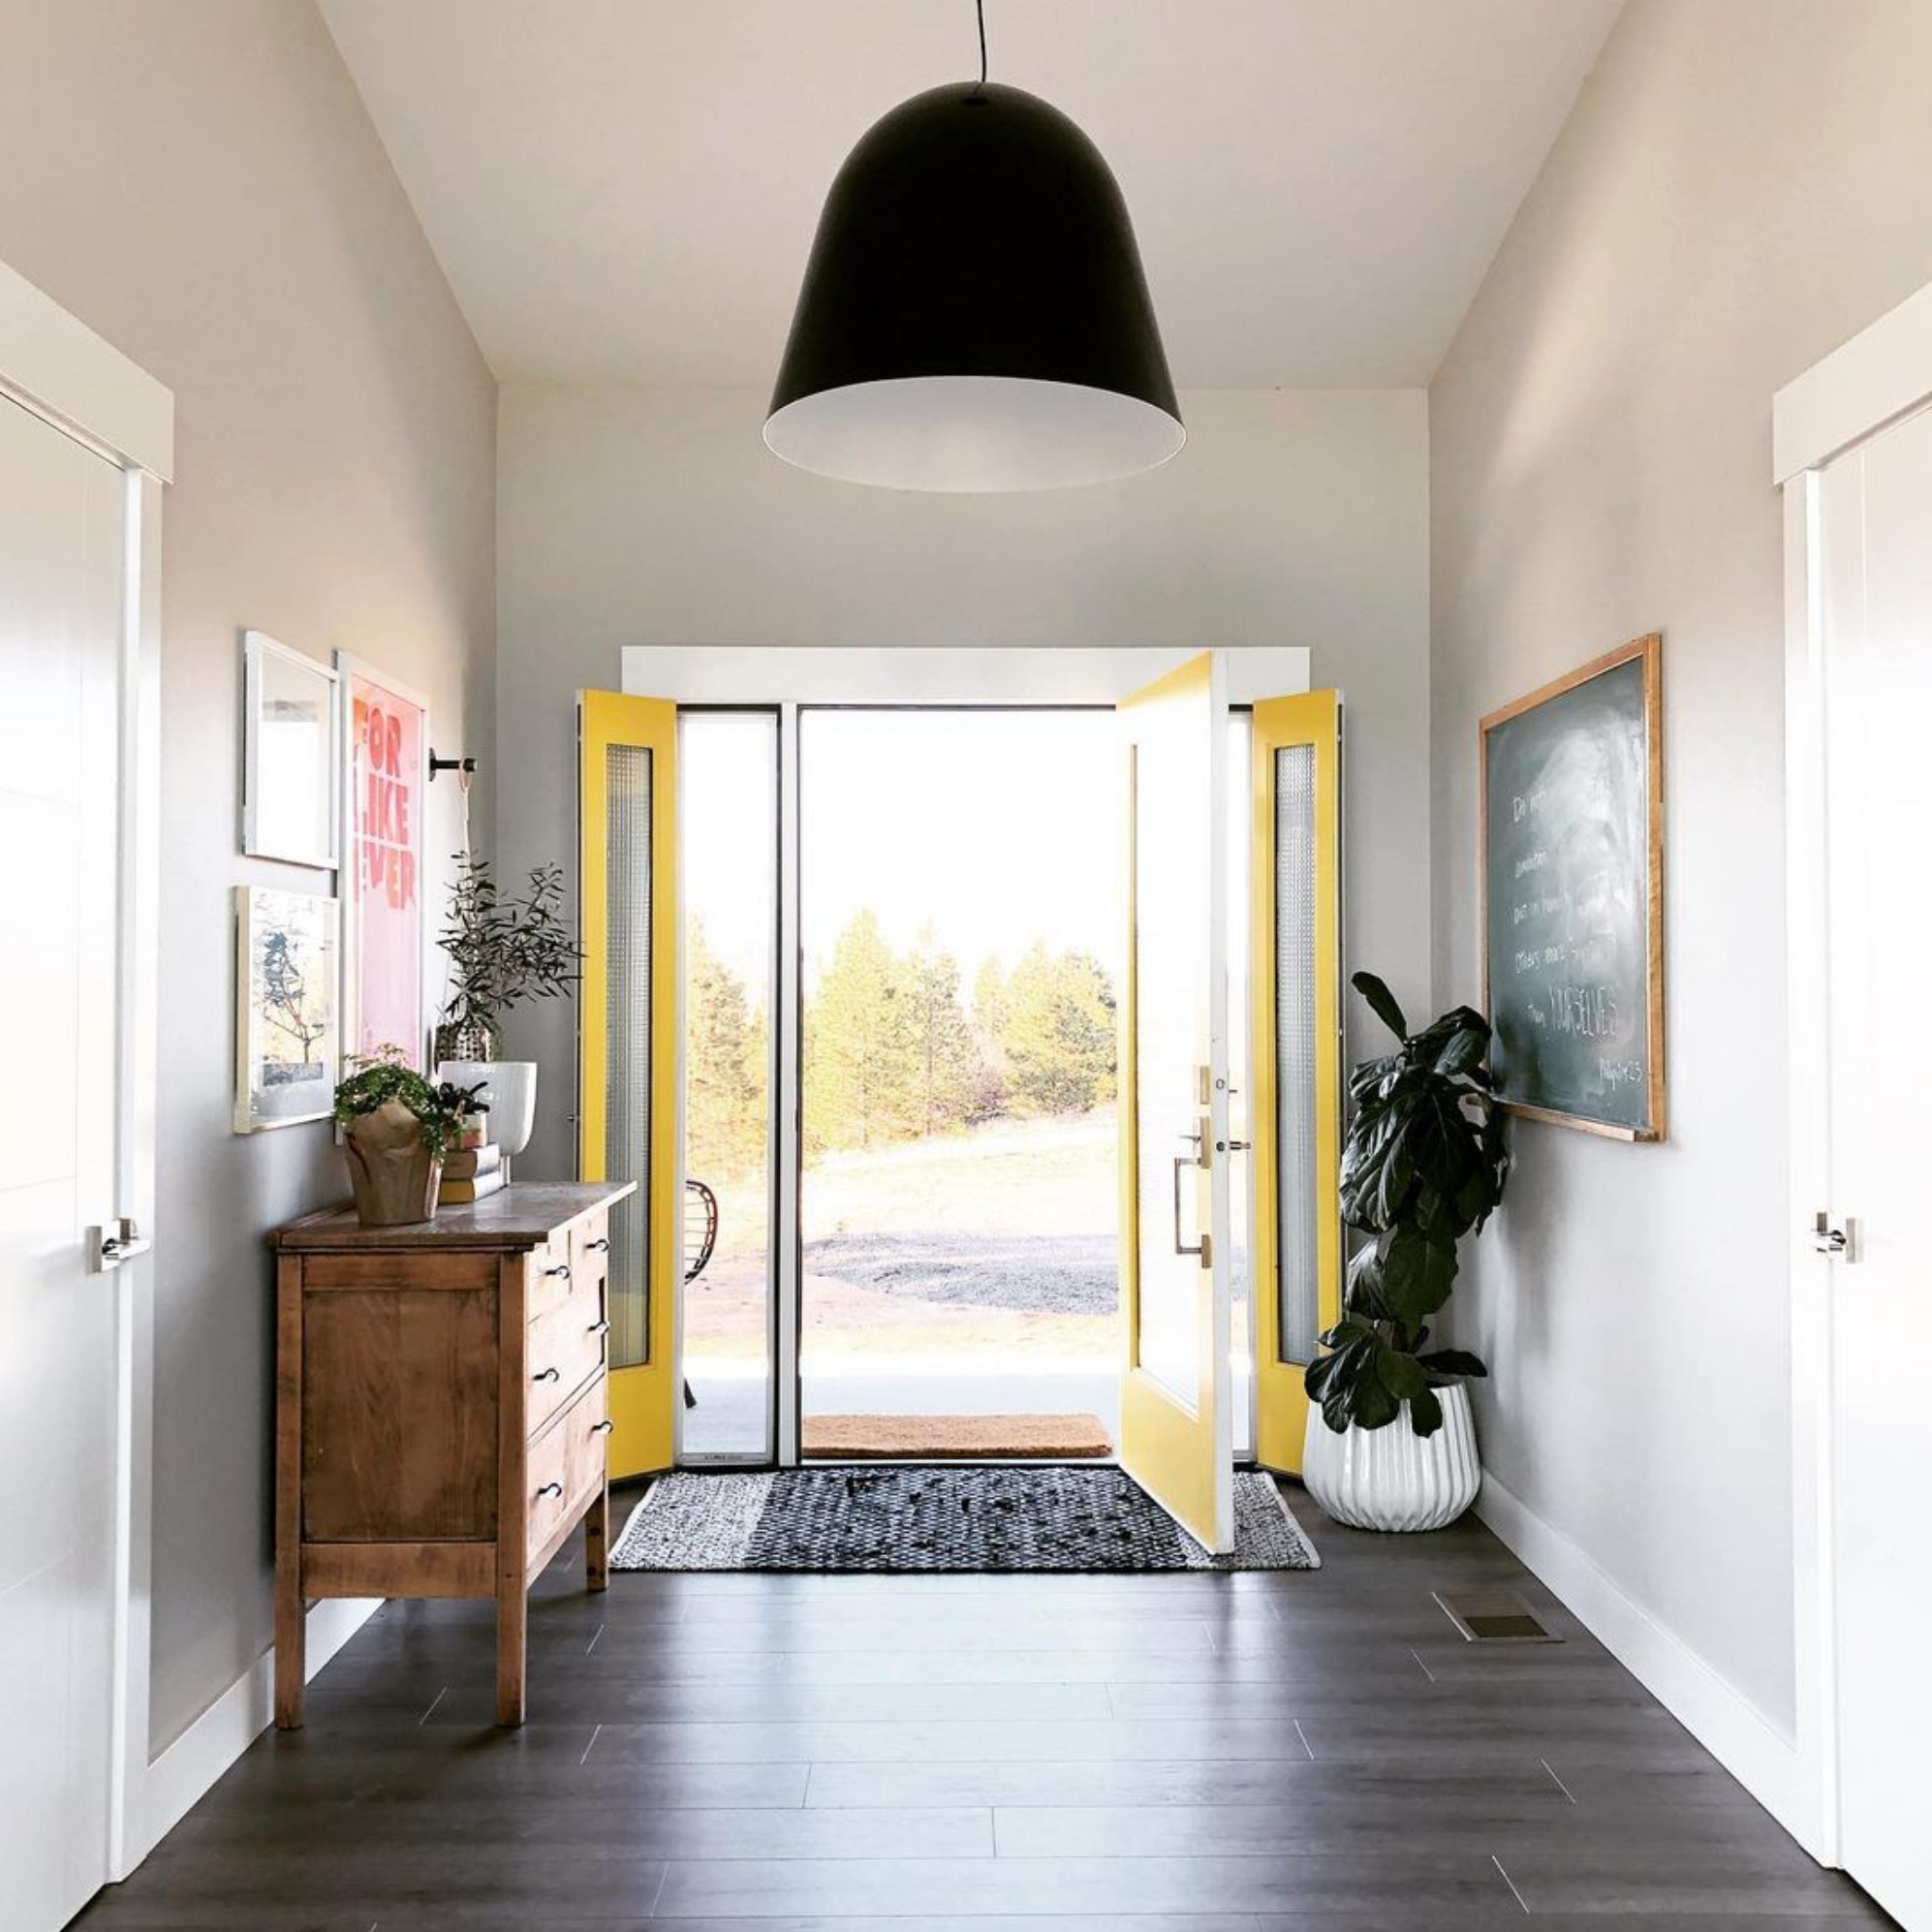 20+ Beautiful Light Greige Paint Colors feat. 'Repose Gray' from Sherwin Williams, IMAGE CREDIT: @marnie.hansen on Instagram